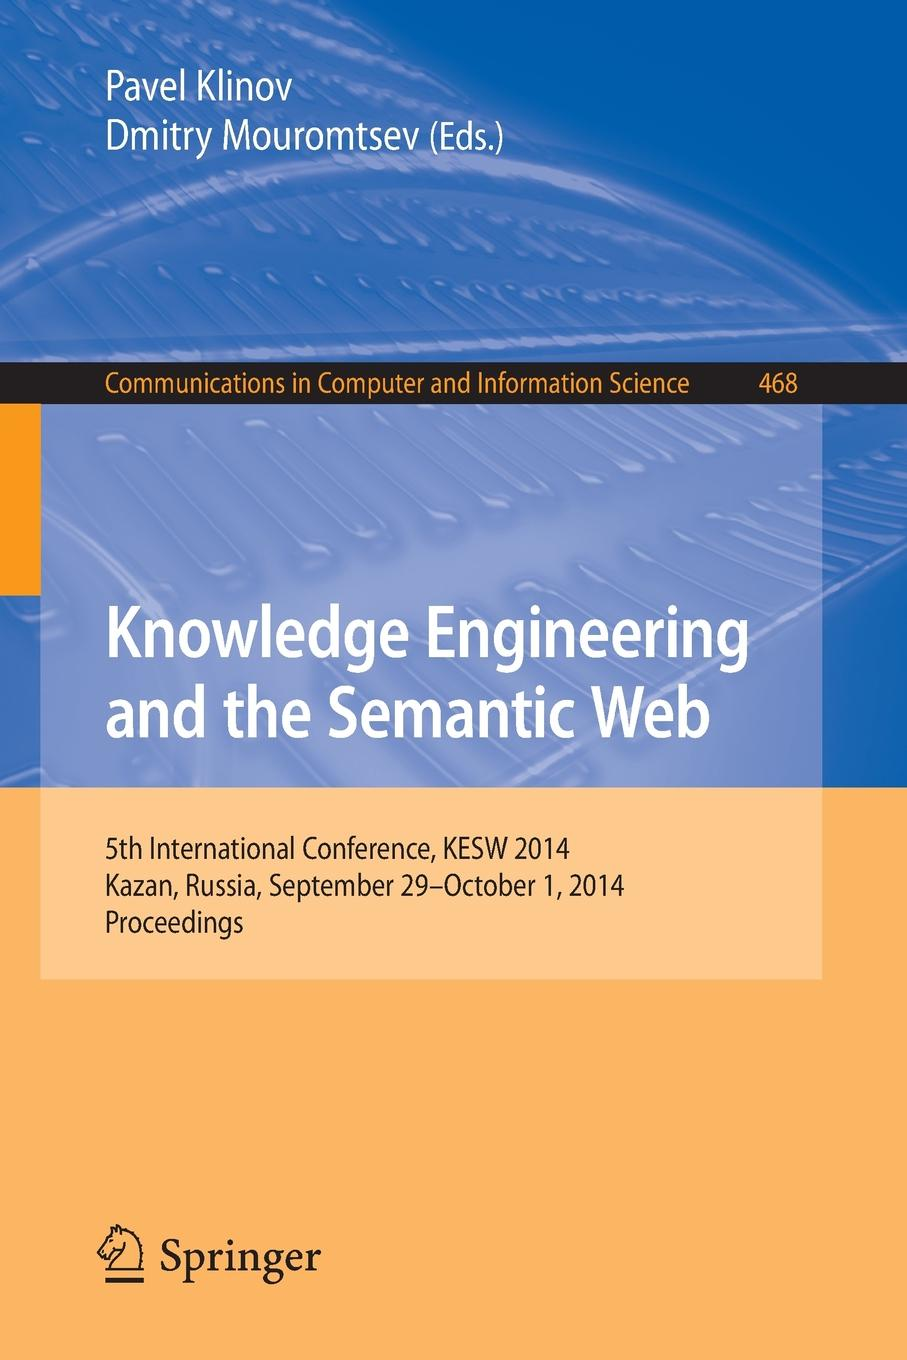 Knowledge Engineering and the Semantic Web 5th International Conference KESW 2014 Kazan Russia September 29--October 1 2014 Proceedings